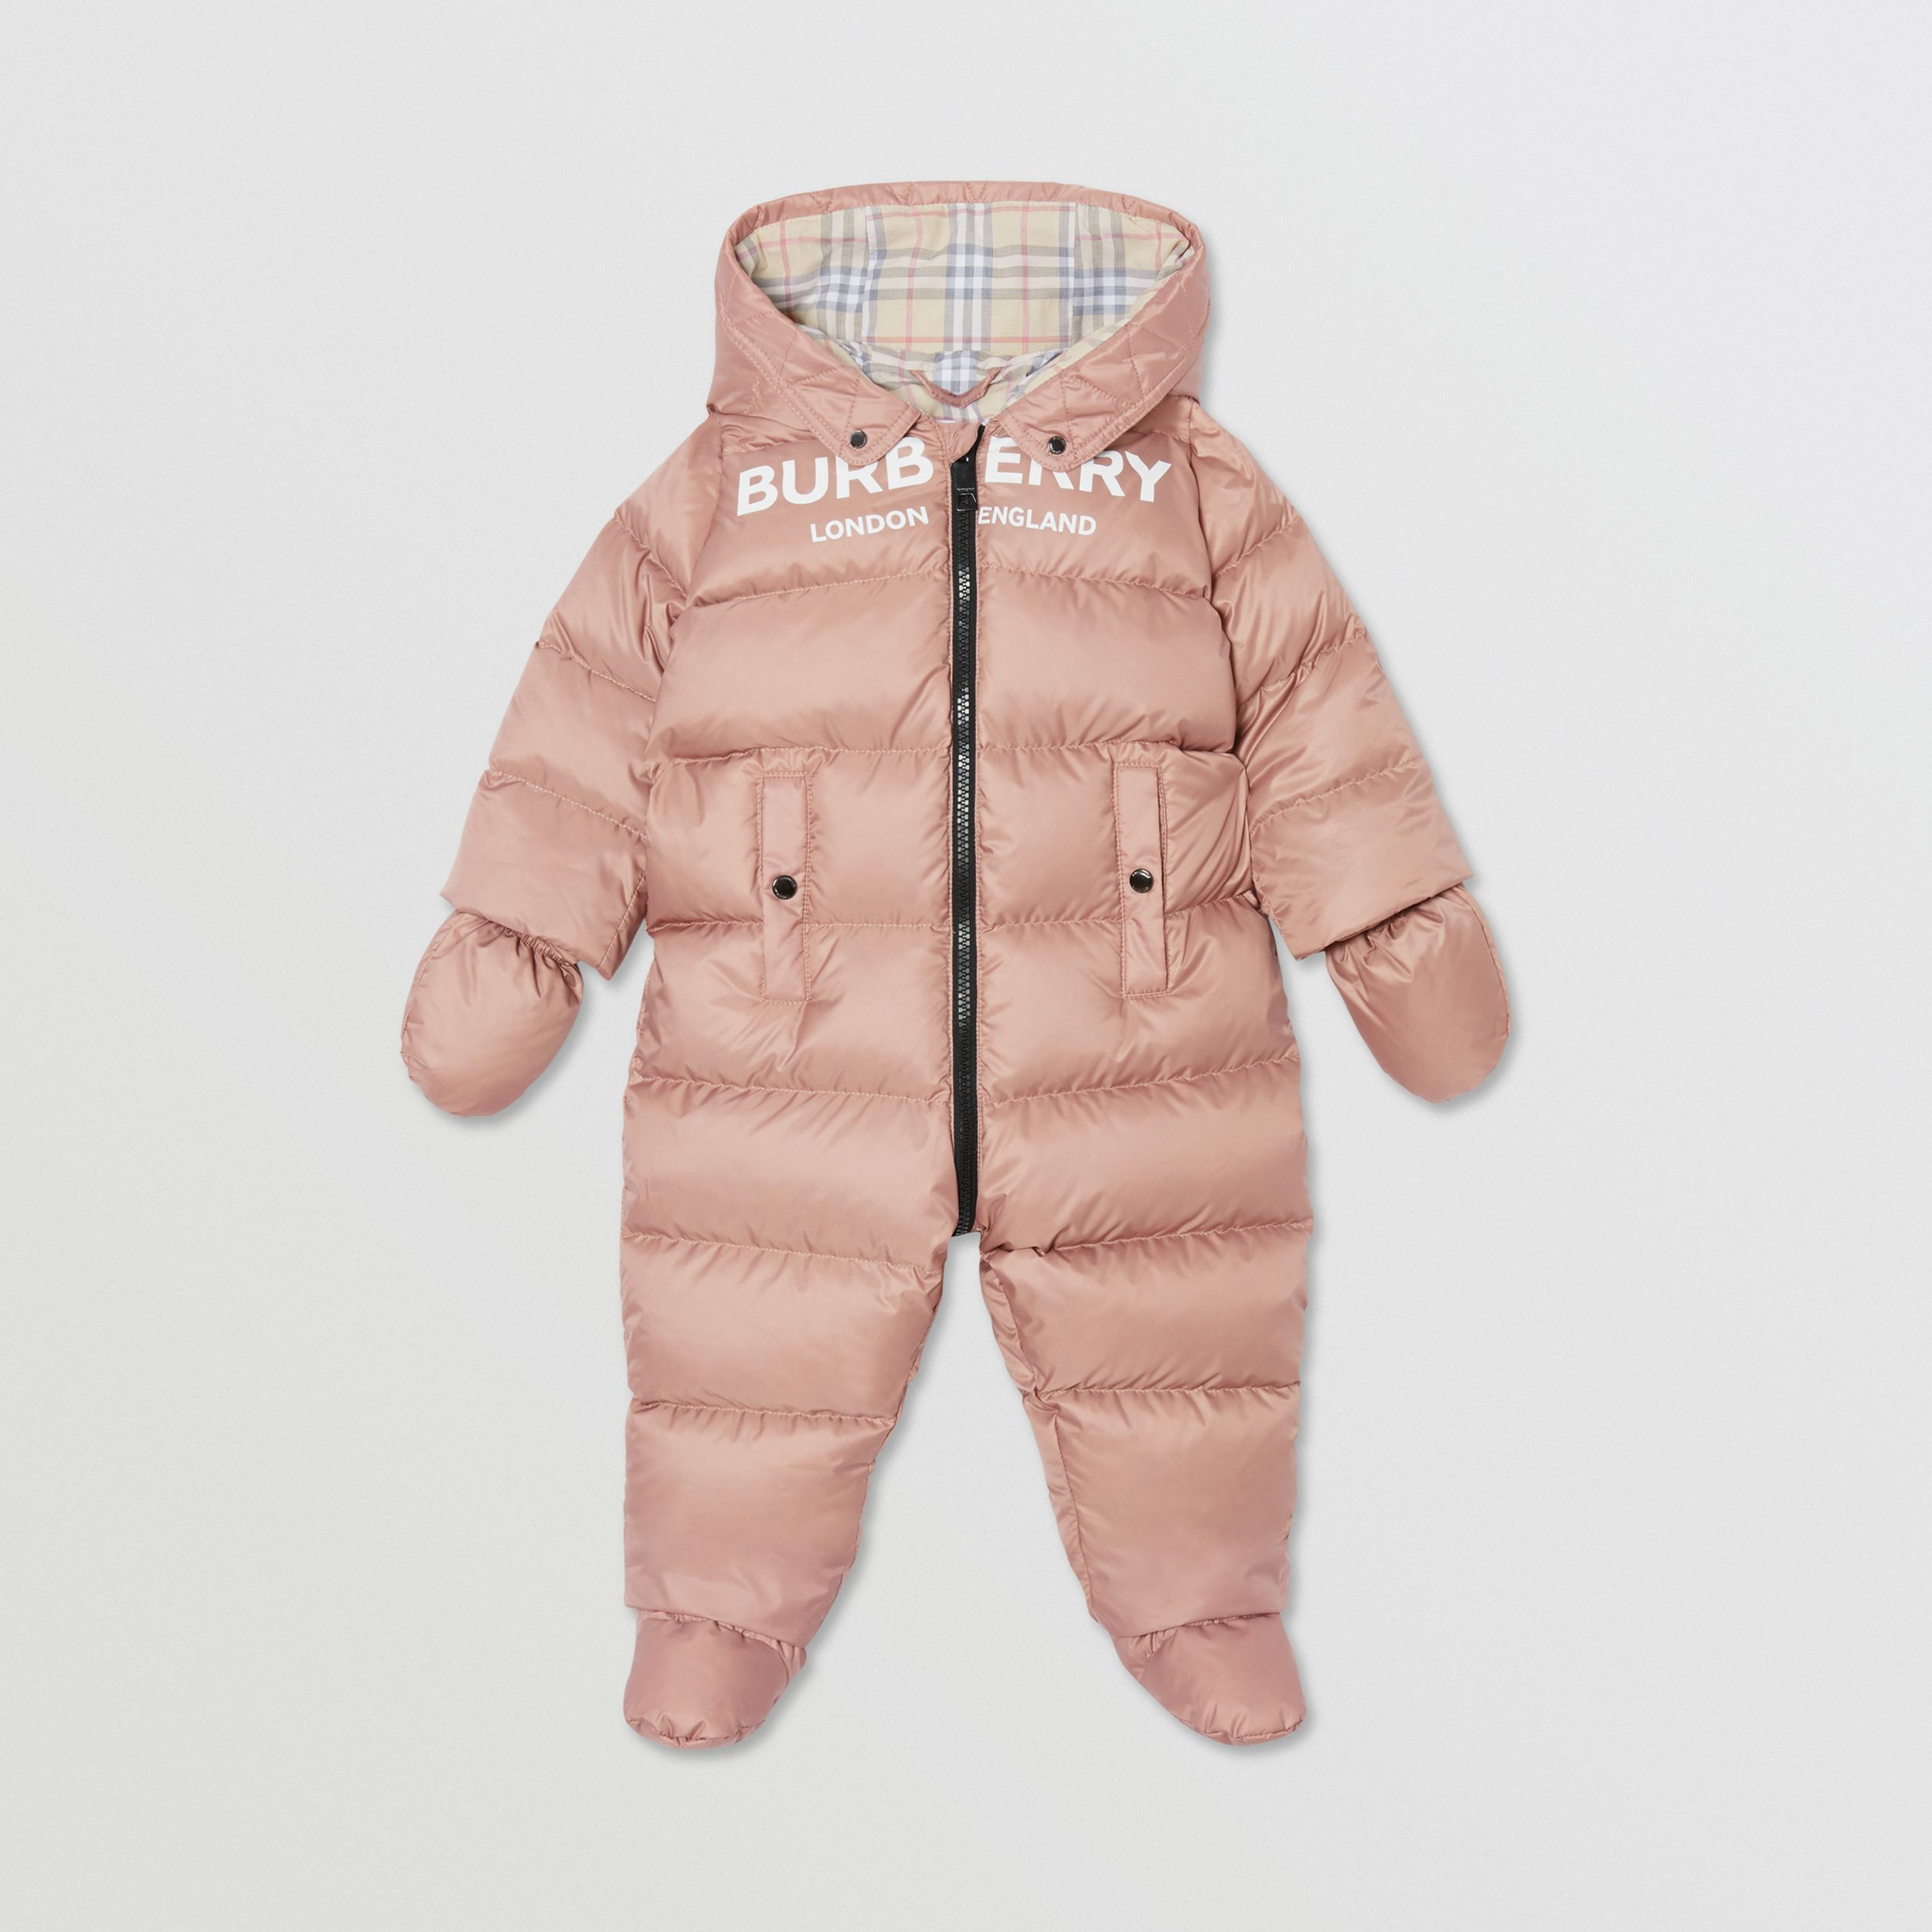 Logo Print Down-filled Puffer Suit in Lavender Pink - Children | Burberry - 1